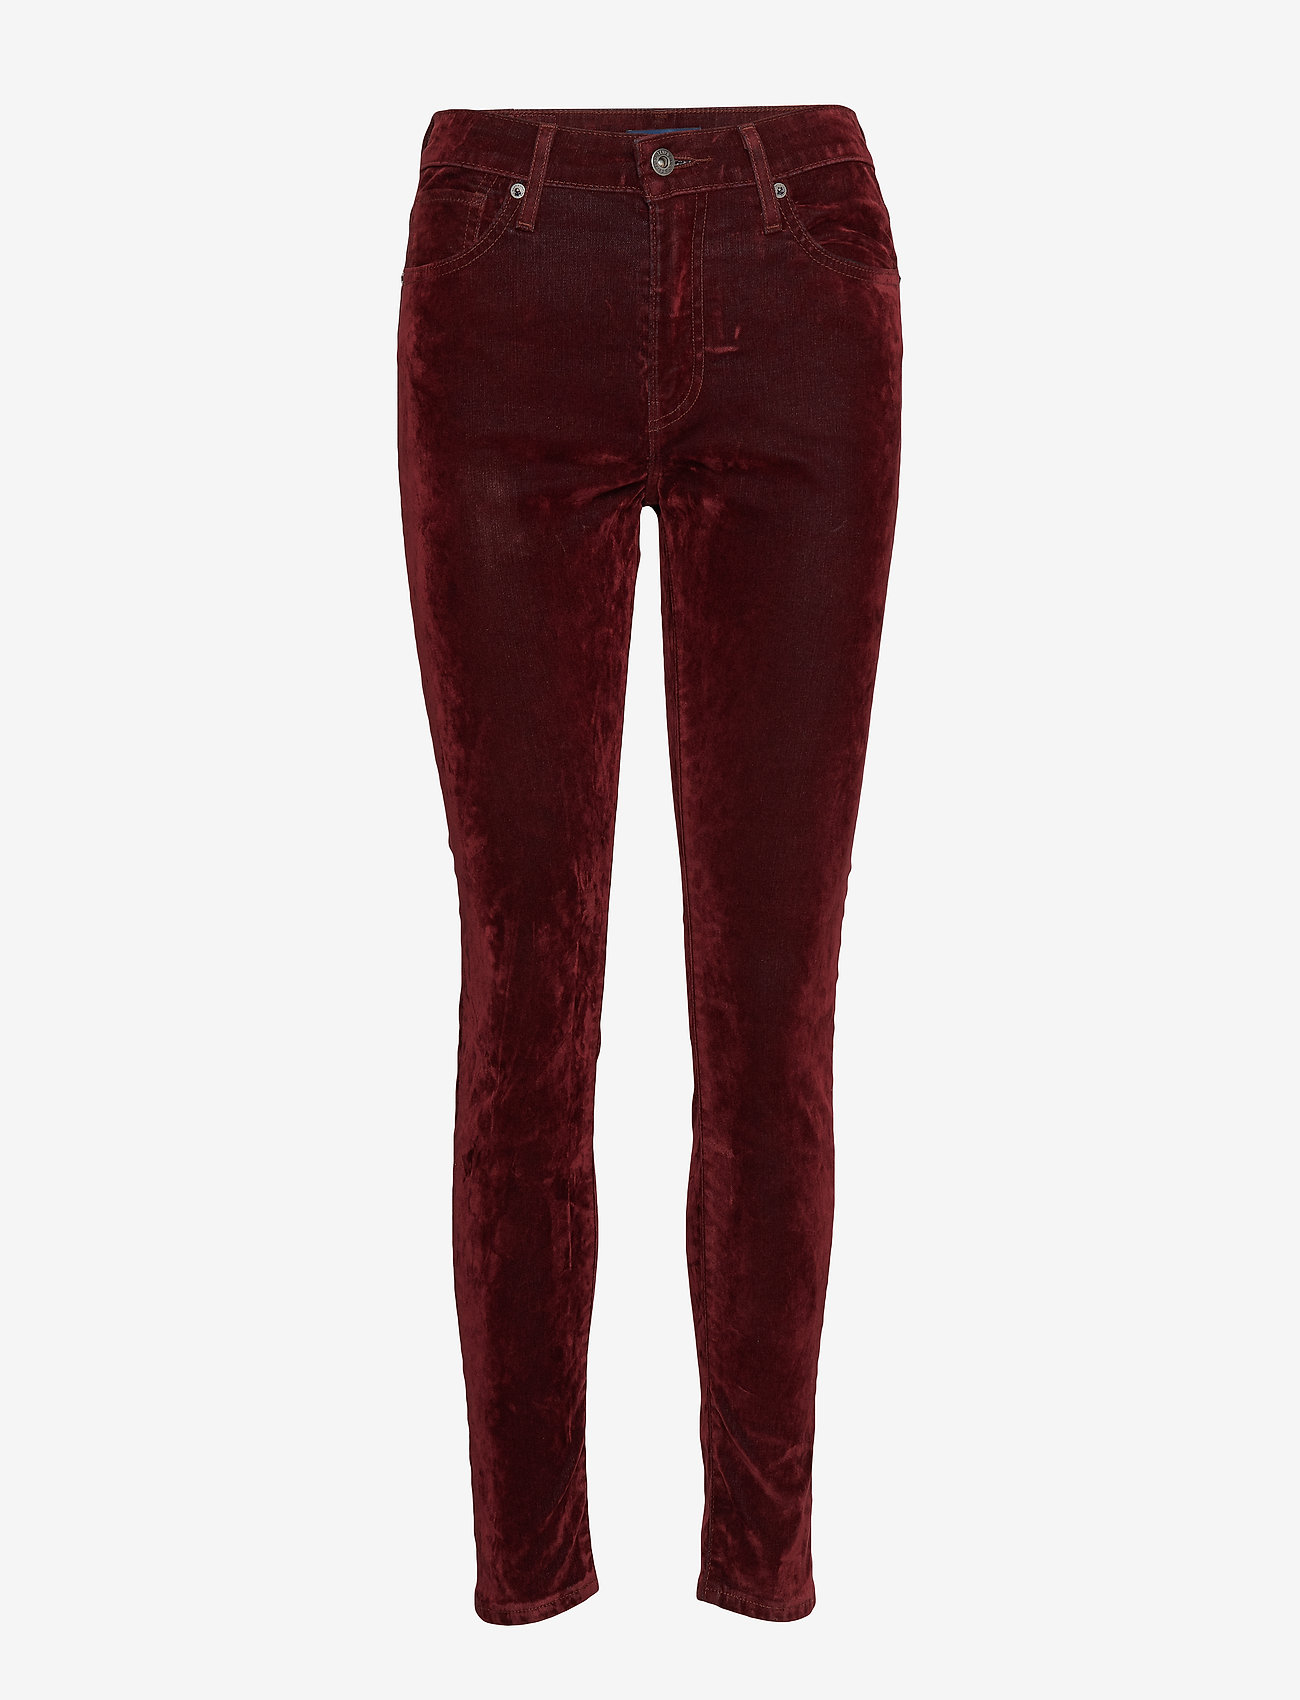 Levi's Made & Crafted - LMC 721 LMC VELVET ROPES - pantalons slim - reds